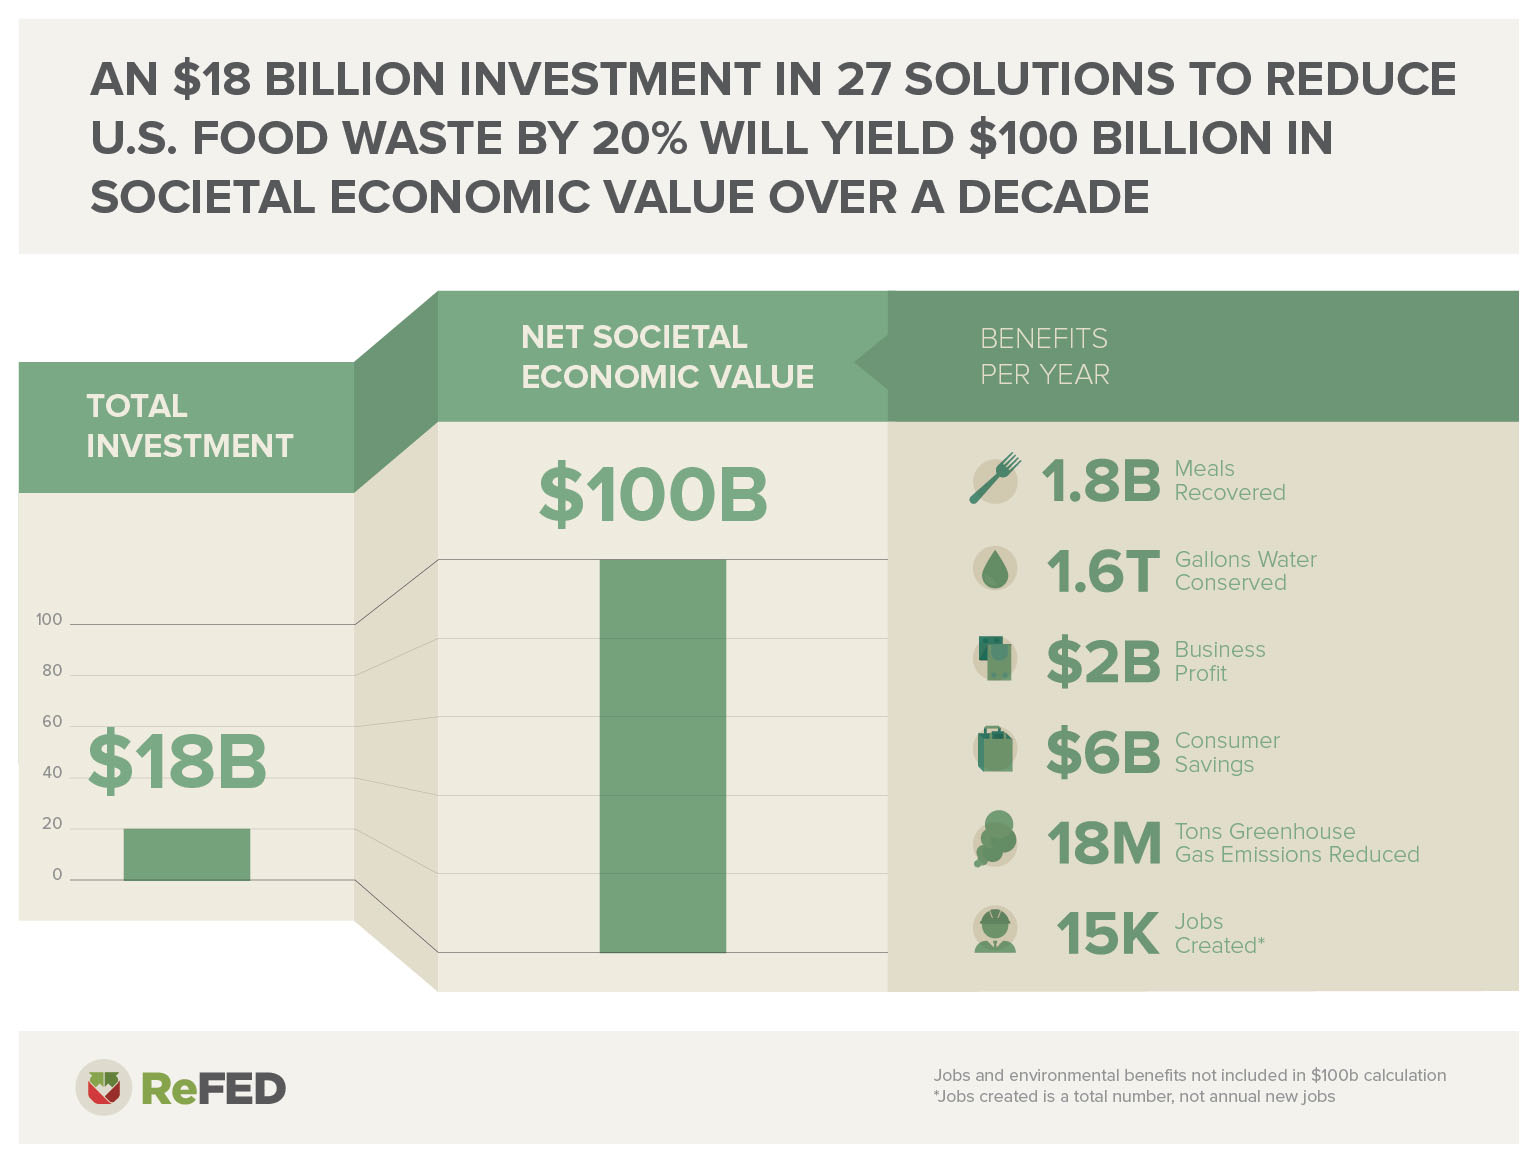 An $18 billion investment in 27 solutions to food waste will yield $100 billion in societal economic value